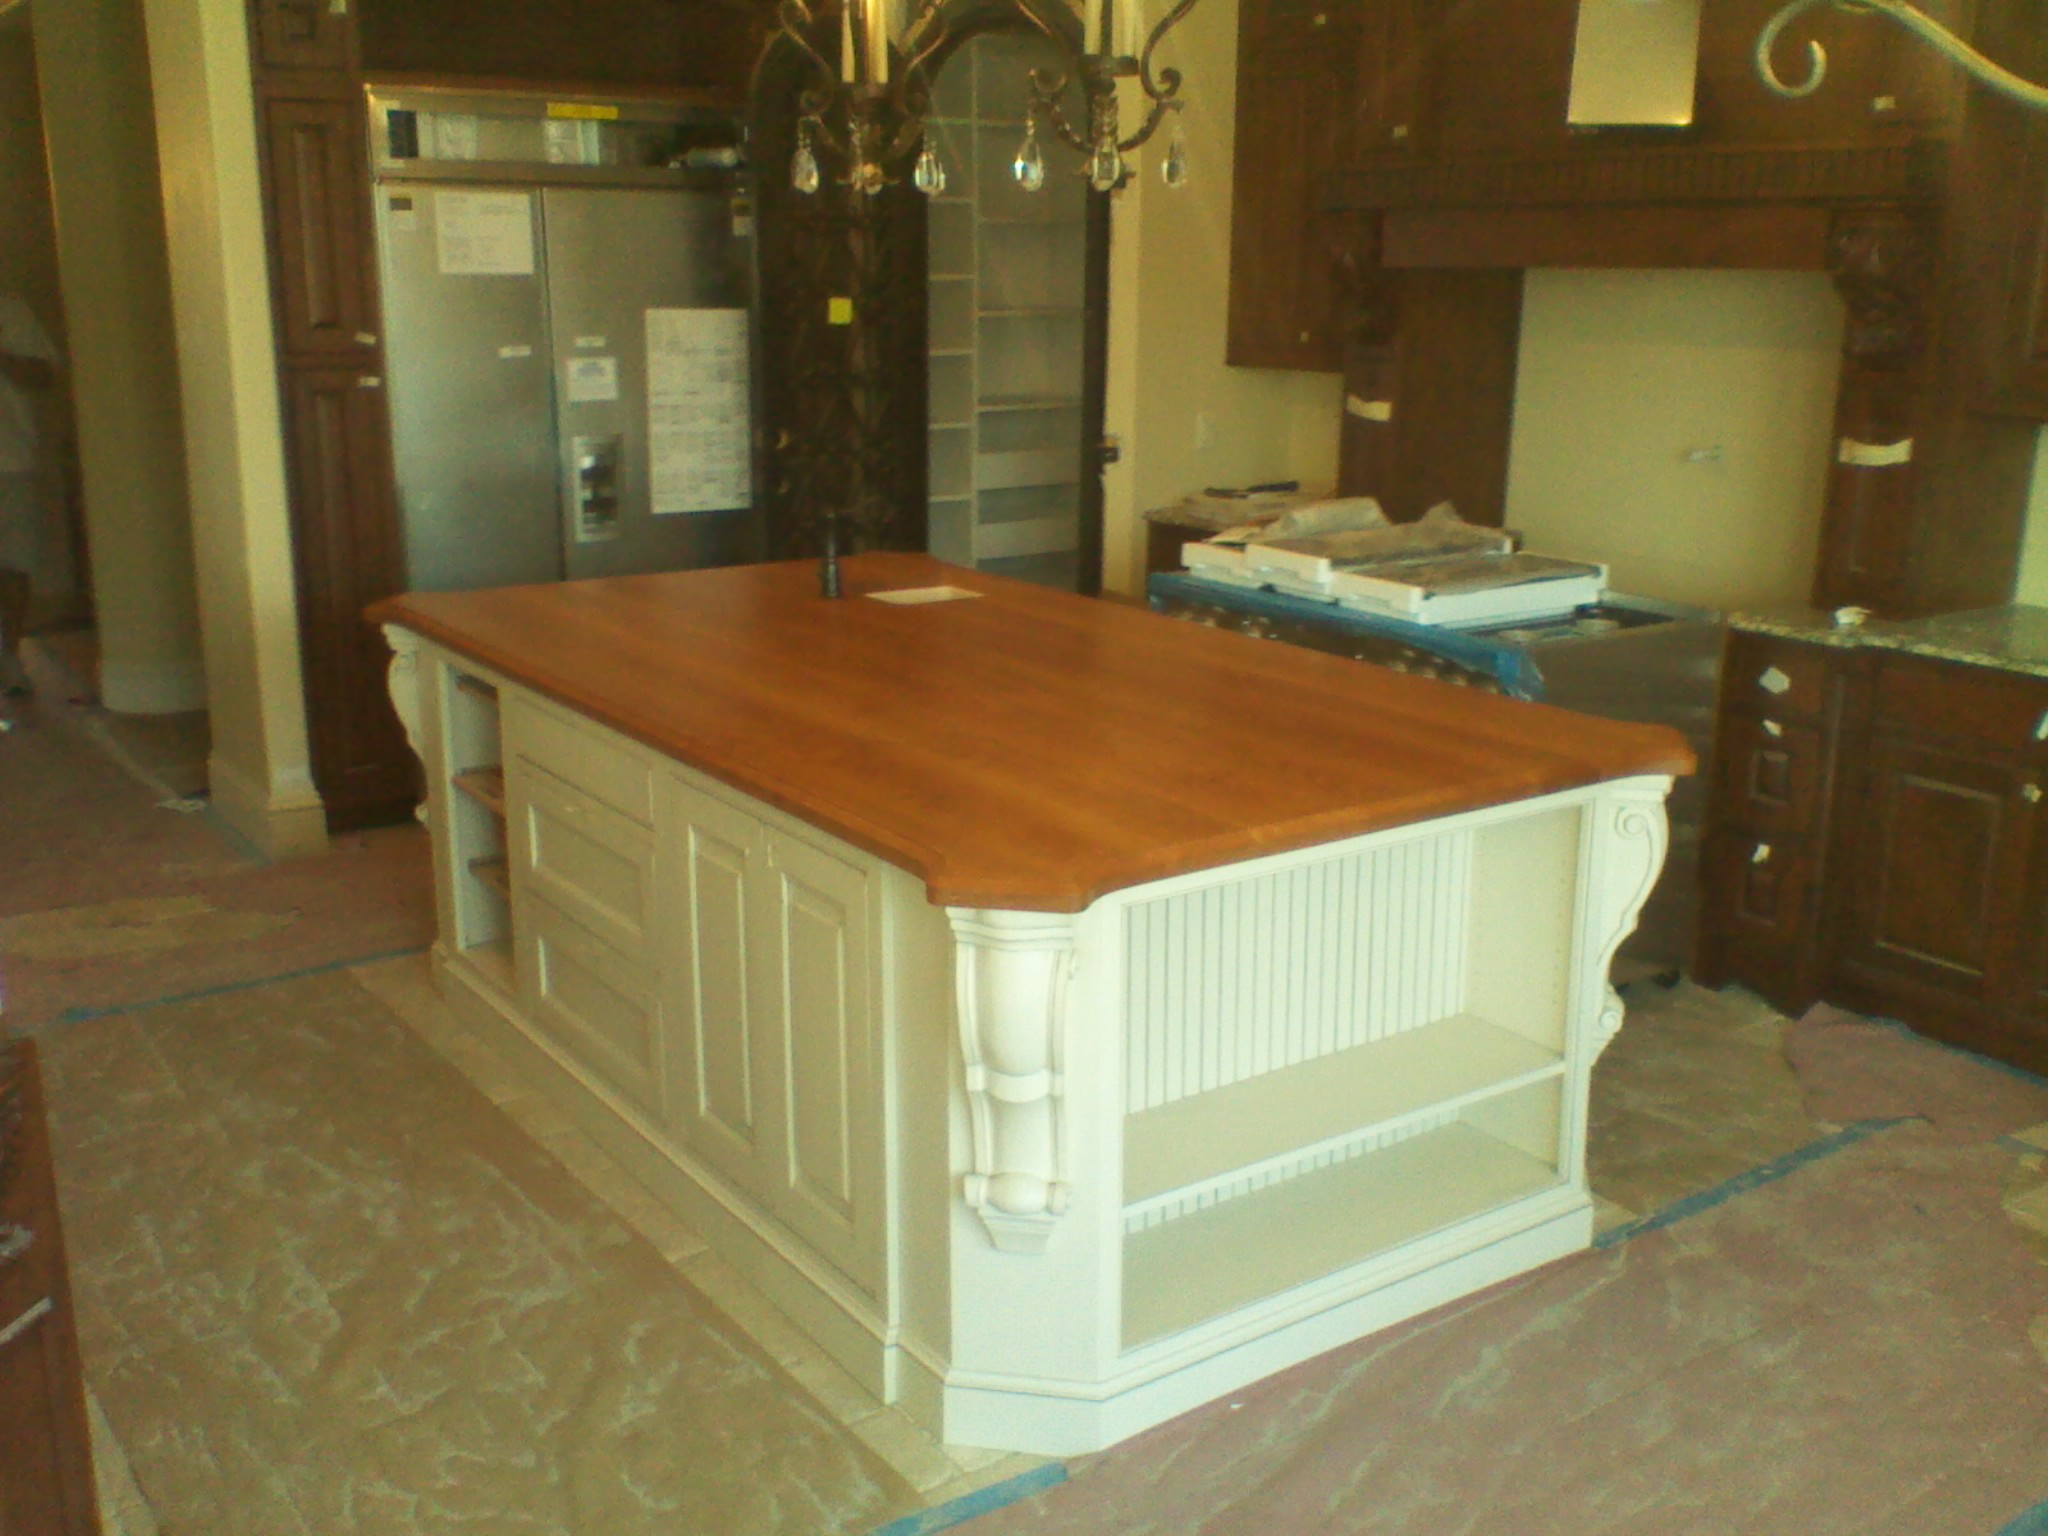 S + L Millworks Cherry Countertop Finished With Odies Oil